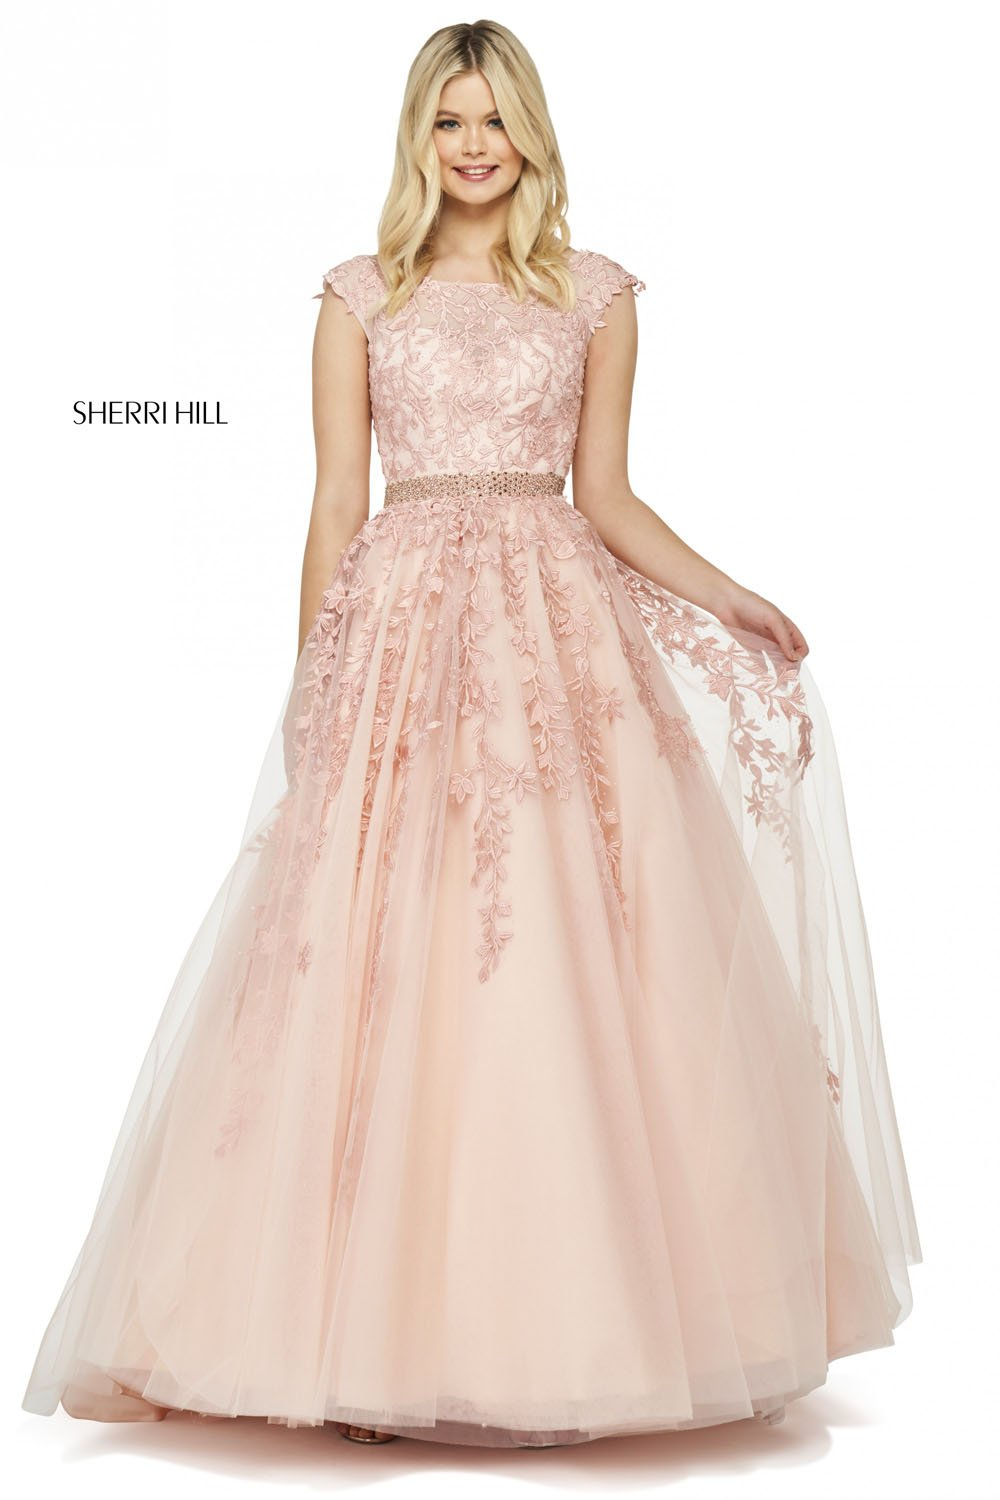 Sherri Hill 53356 prom dress images.  Sherri Hill 53356 is available in these colors: Gold, Ivory Nude, Bright Pink, Light Blue, Blush, Yellow, Coral, Lilac, Navy, Red.